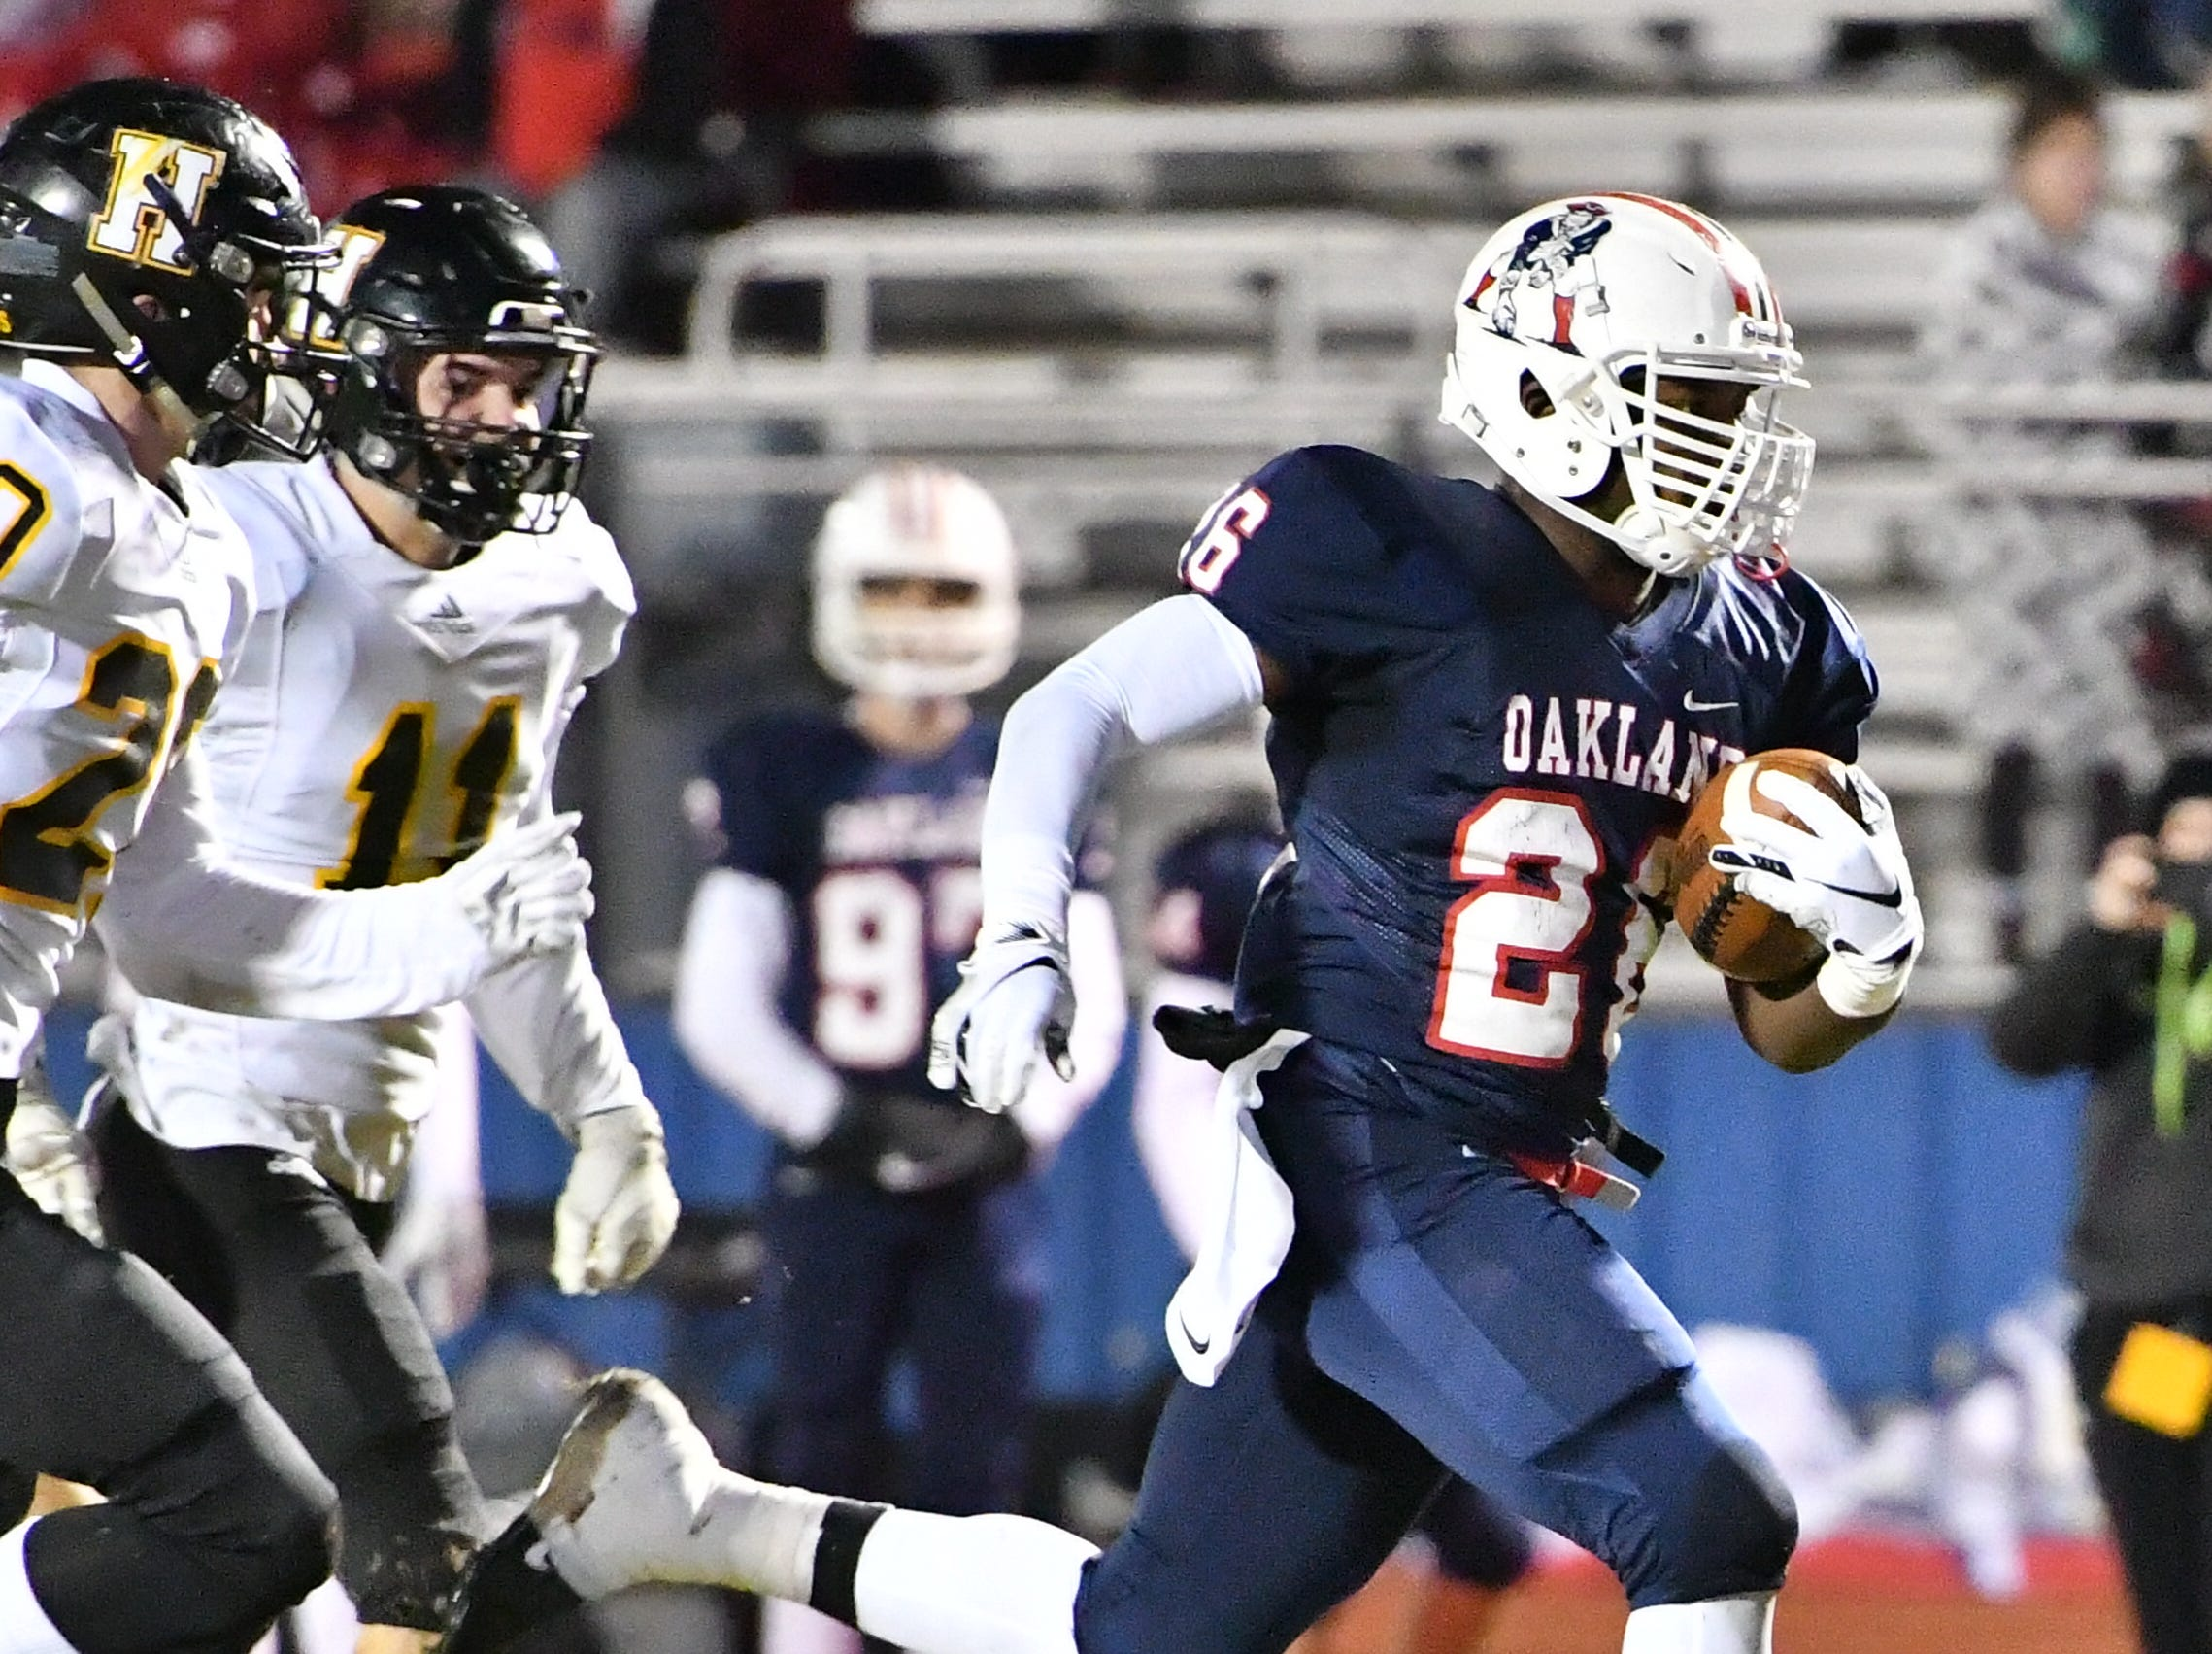 Oakland's Xavier Myers scores his first TD of the night Friday night against Hendersonville.